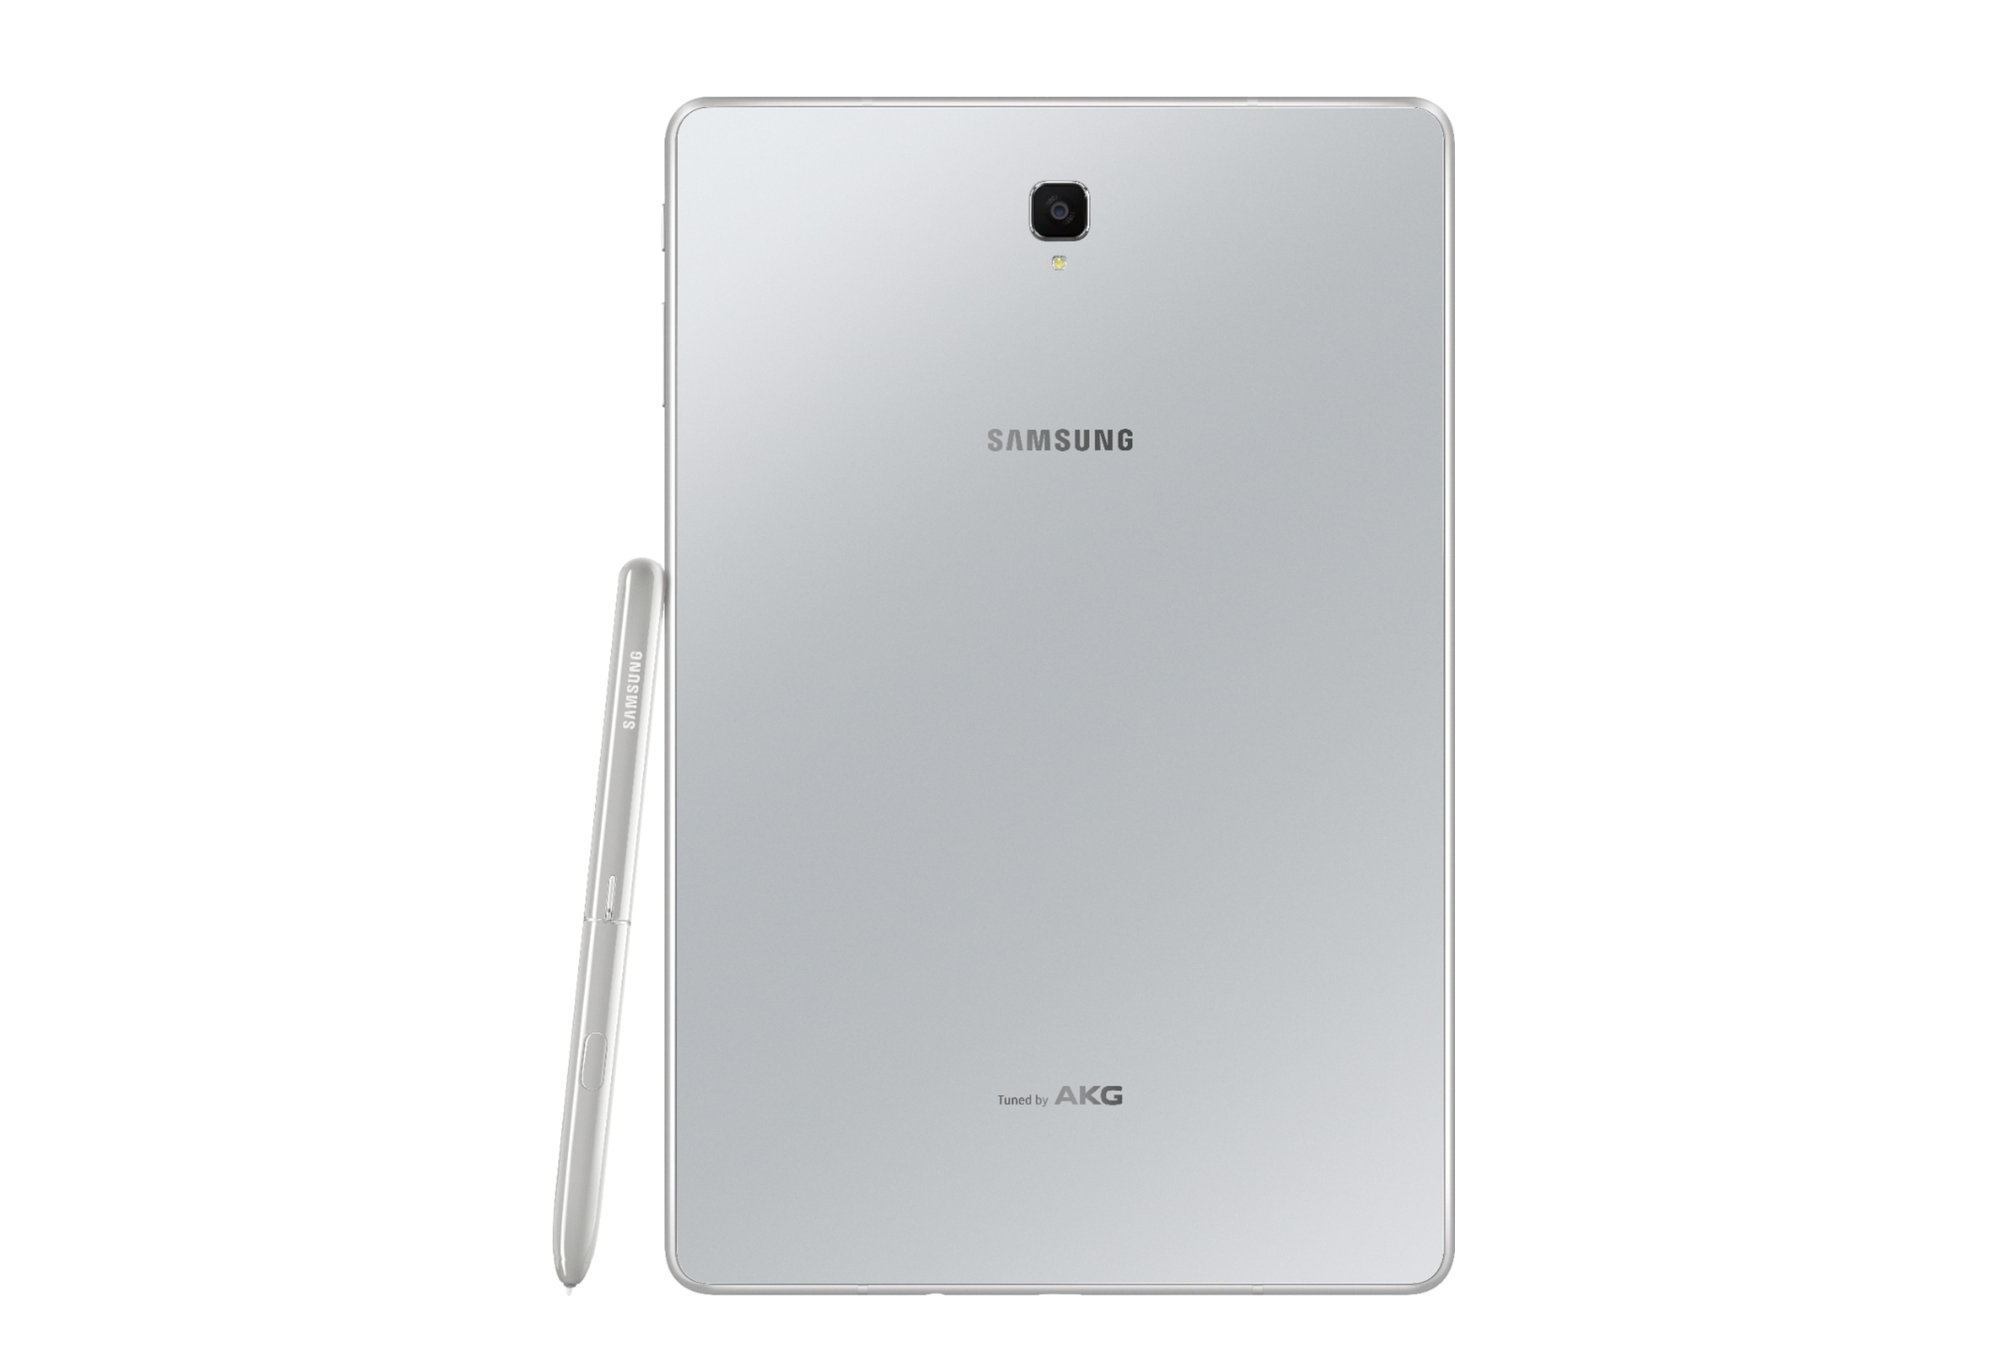 Samsung Galaxy Tab S4 Gets Pictured Again, With Accessories, White ...